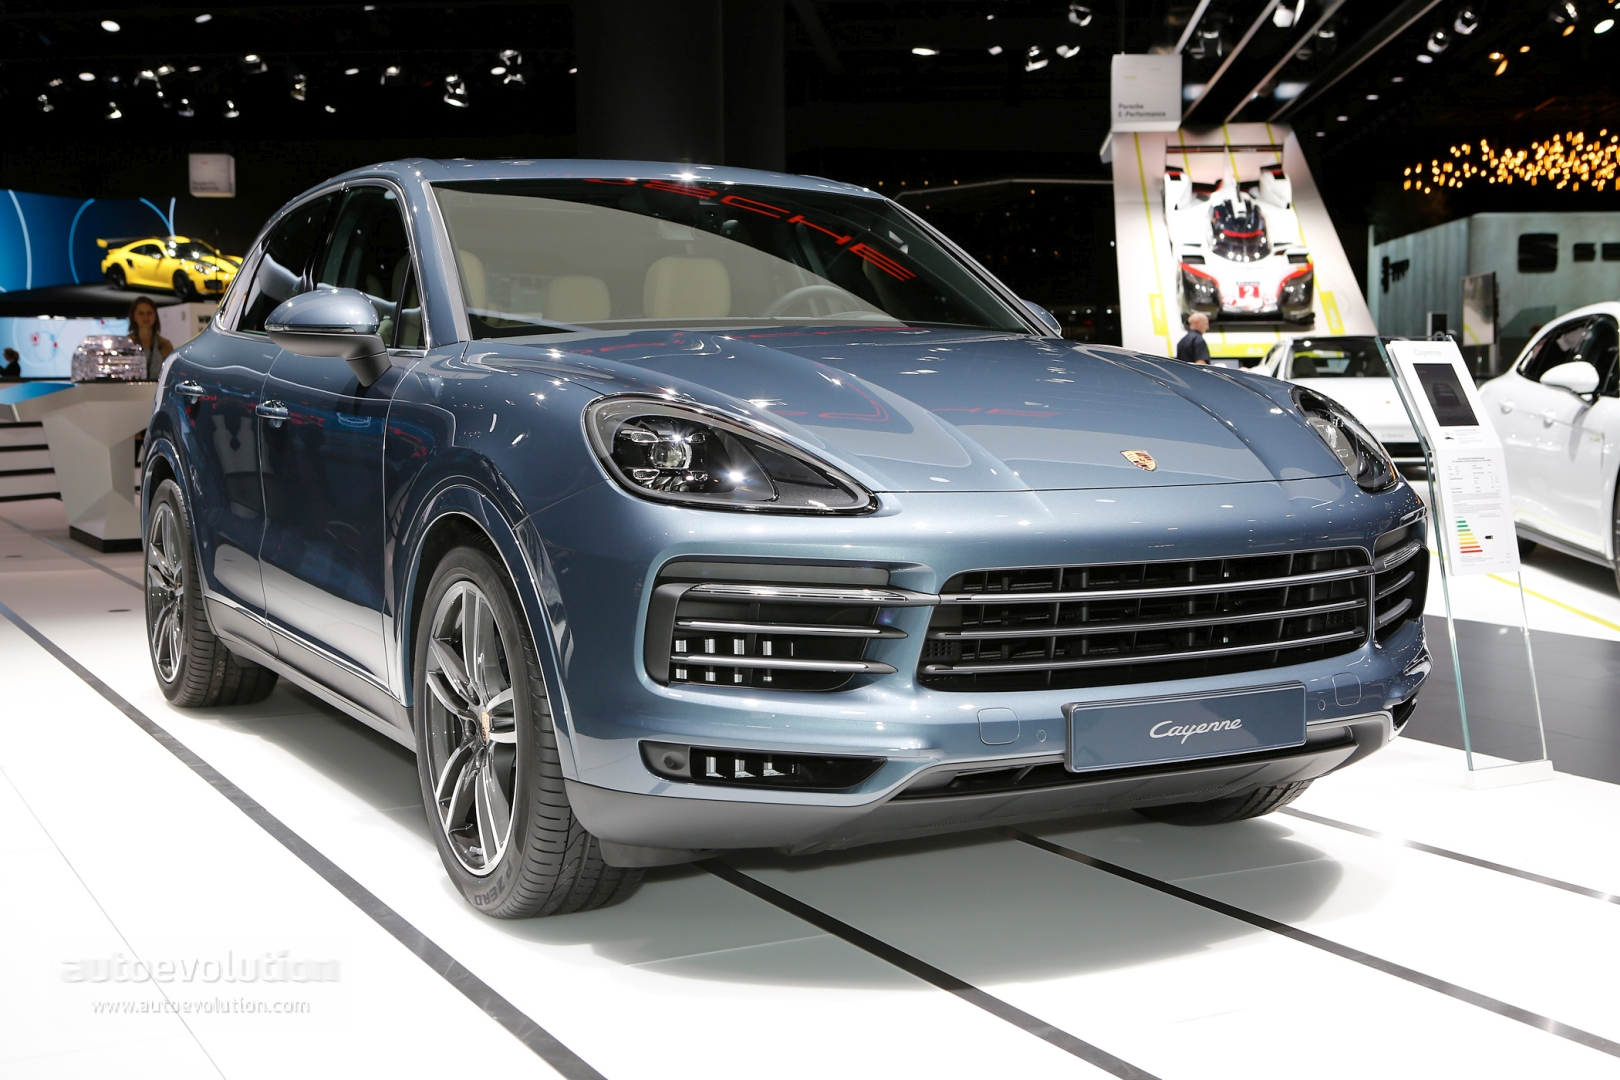 2019 Porsche Cayenne Turbo Is A Sportscar Together In Frankfurt Has 3 9s 0 60